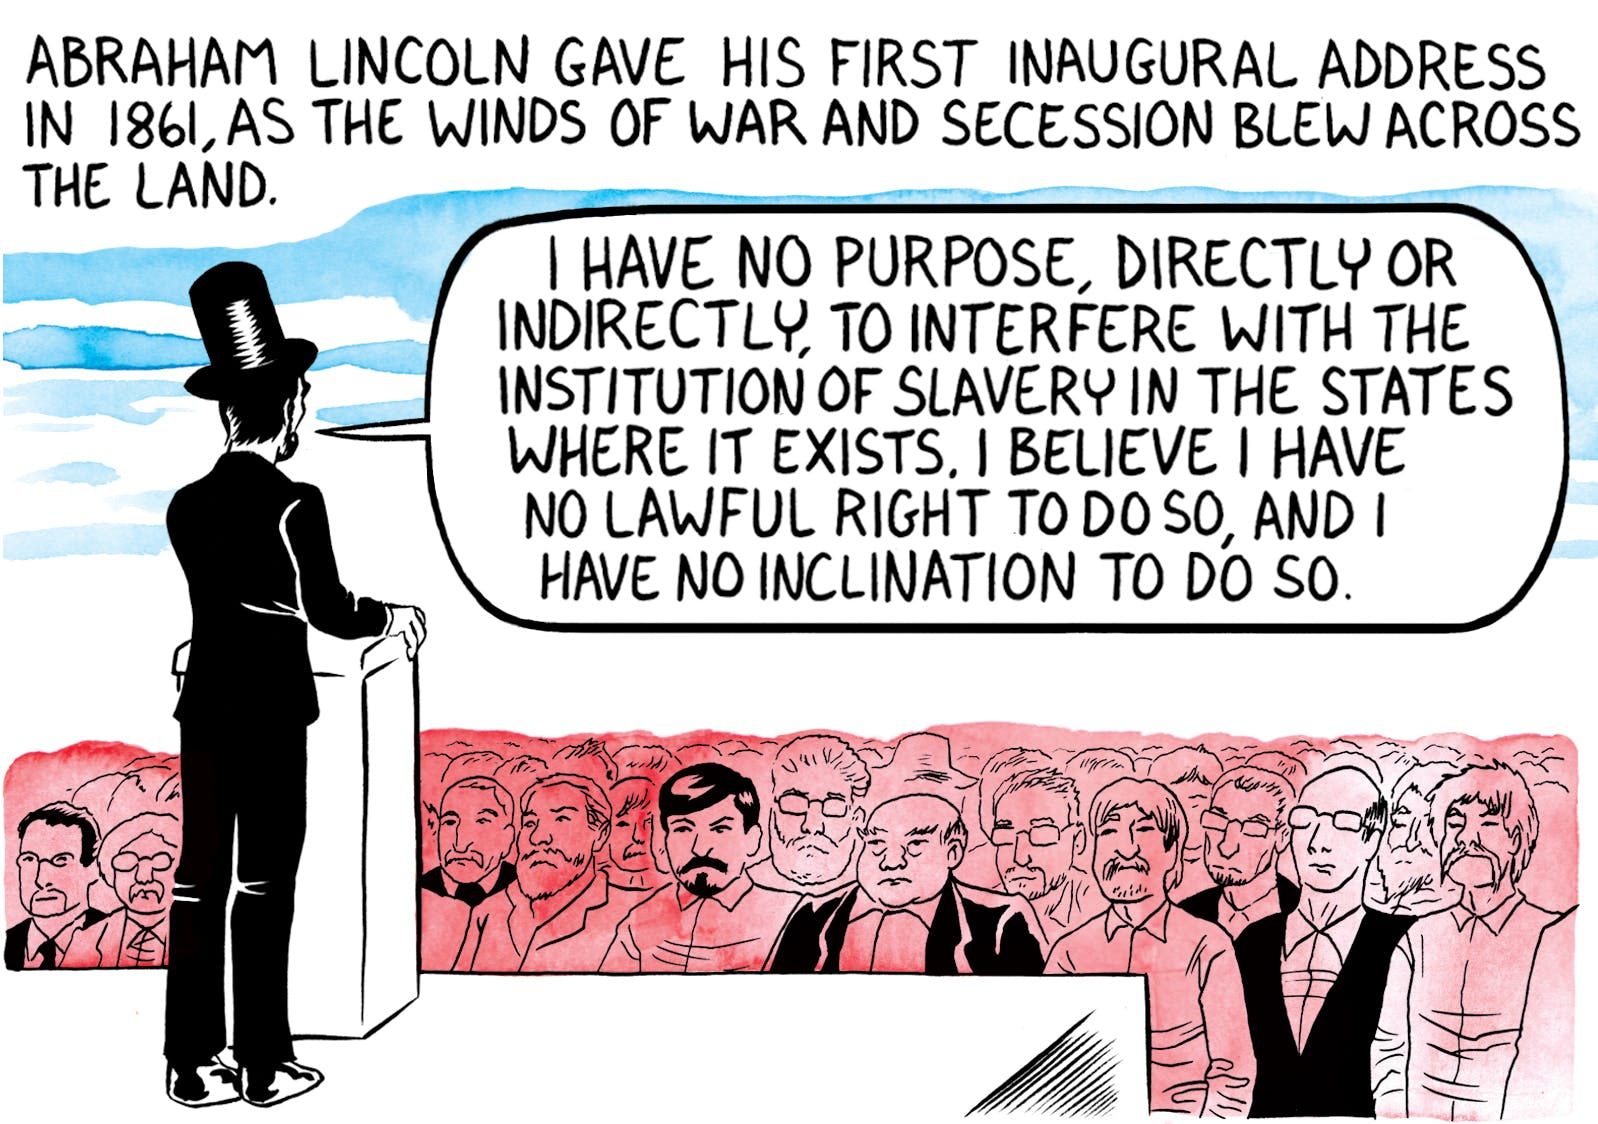 """Comic section, caption: Abraham Lincoln gave his first inaugural address in 1861, as the winds of war and secession blew across the land. In speech bubble: """"I have no purpose, directly or indirectly, to interfere with the institution of slavery in the states where it exists. I believe I have no lawful right to do so, and I have no inclination to do so."""